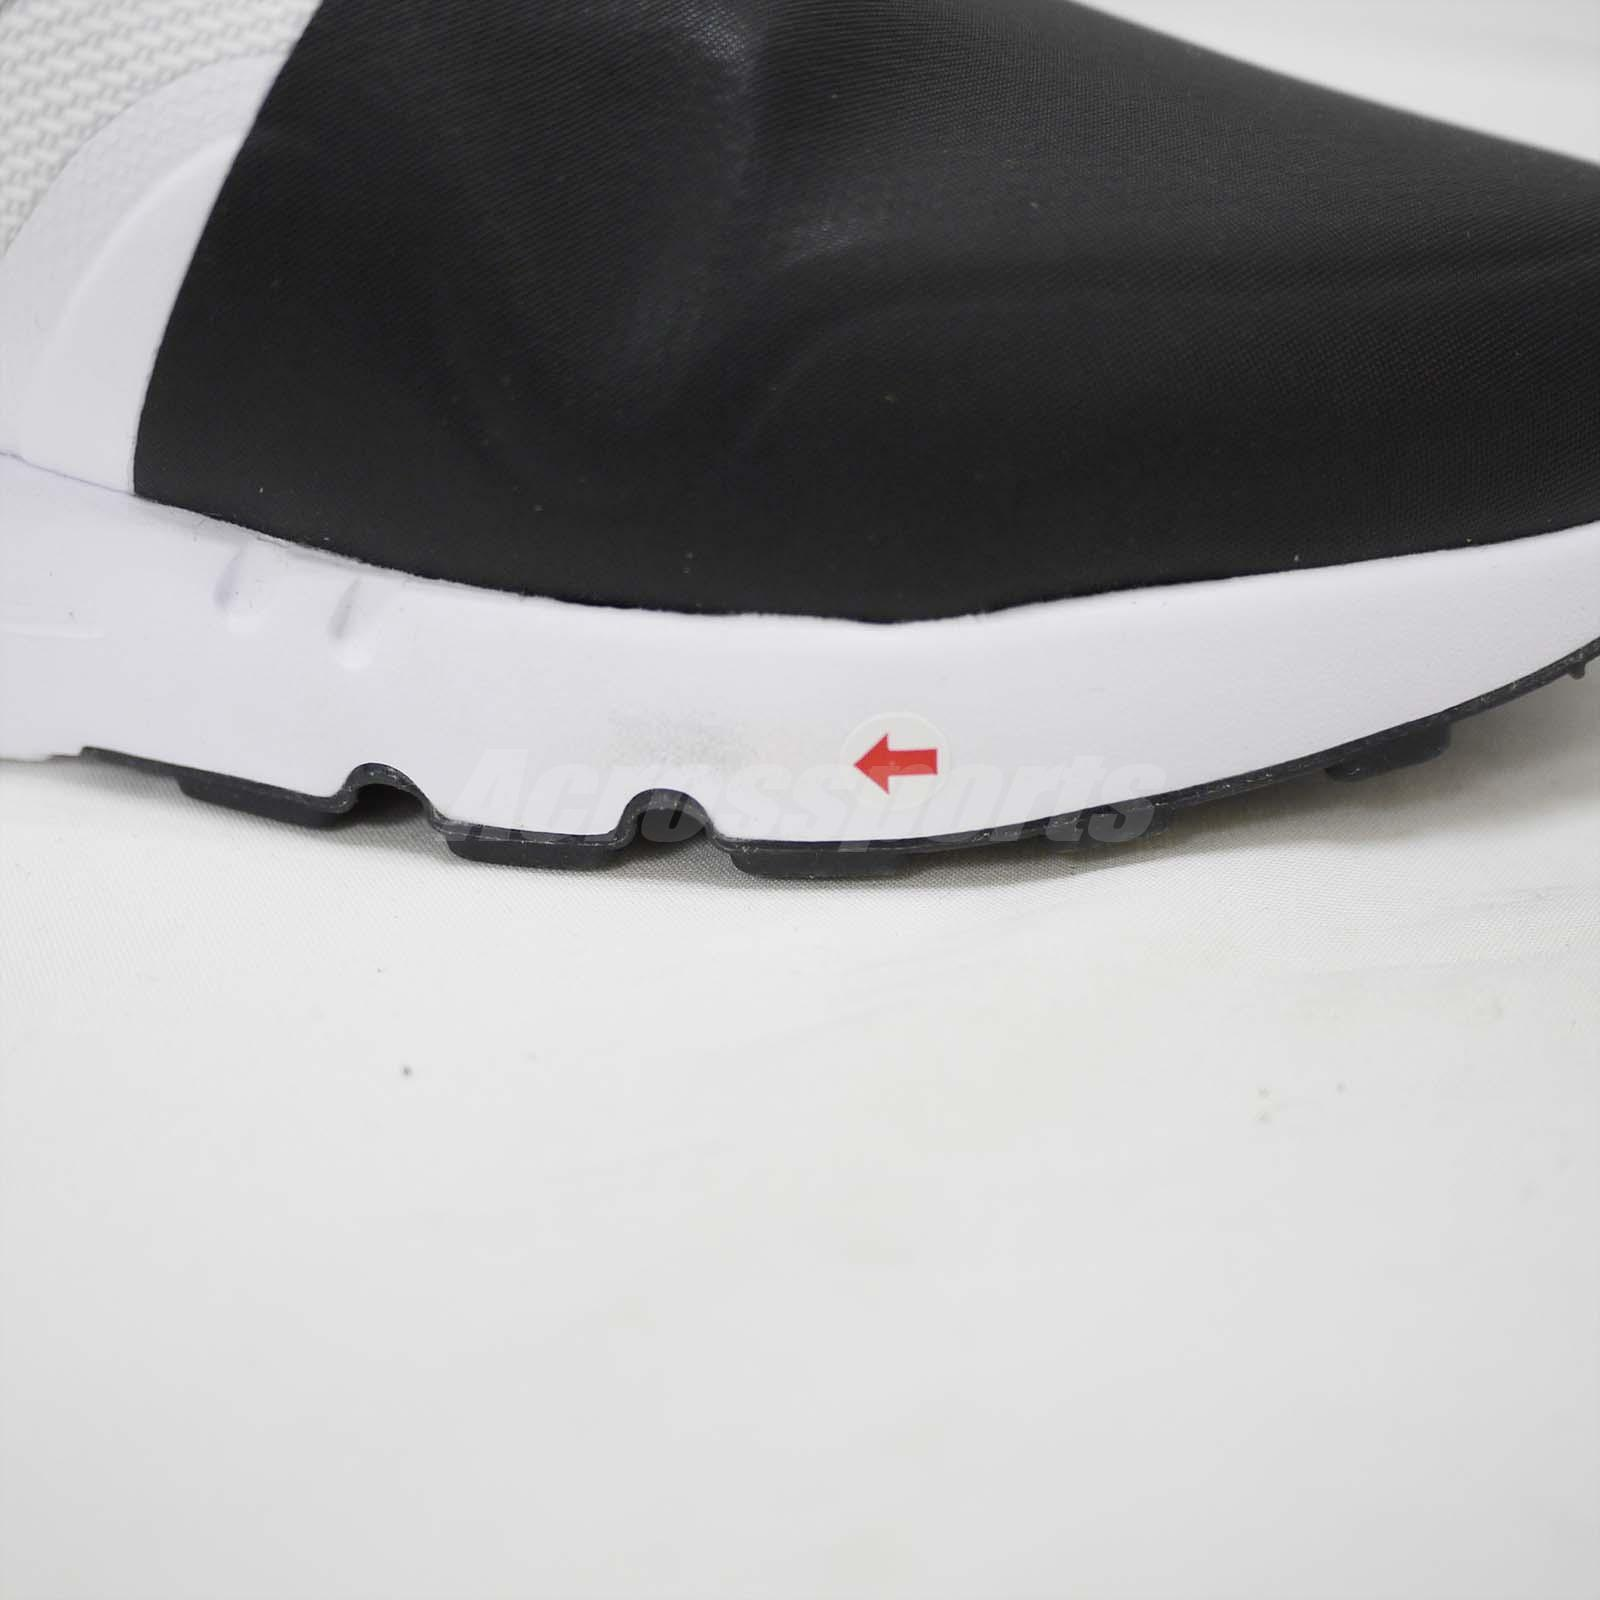 6c85e69b31 Nike Air Max 1 Ultra 2.0 SE Both Feet With Discoloration Men Shoes ...